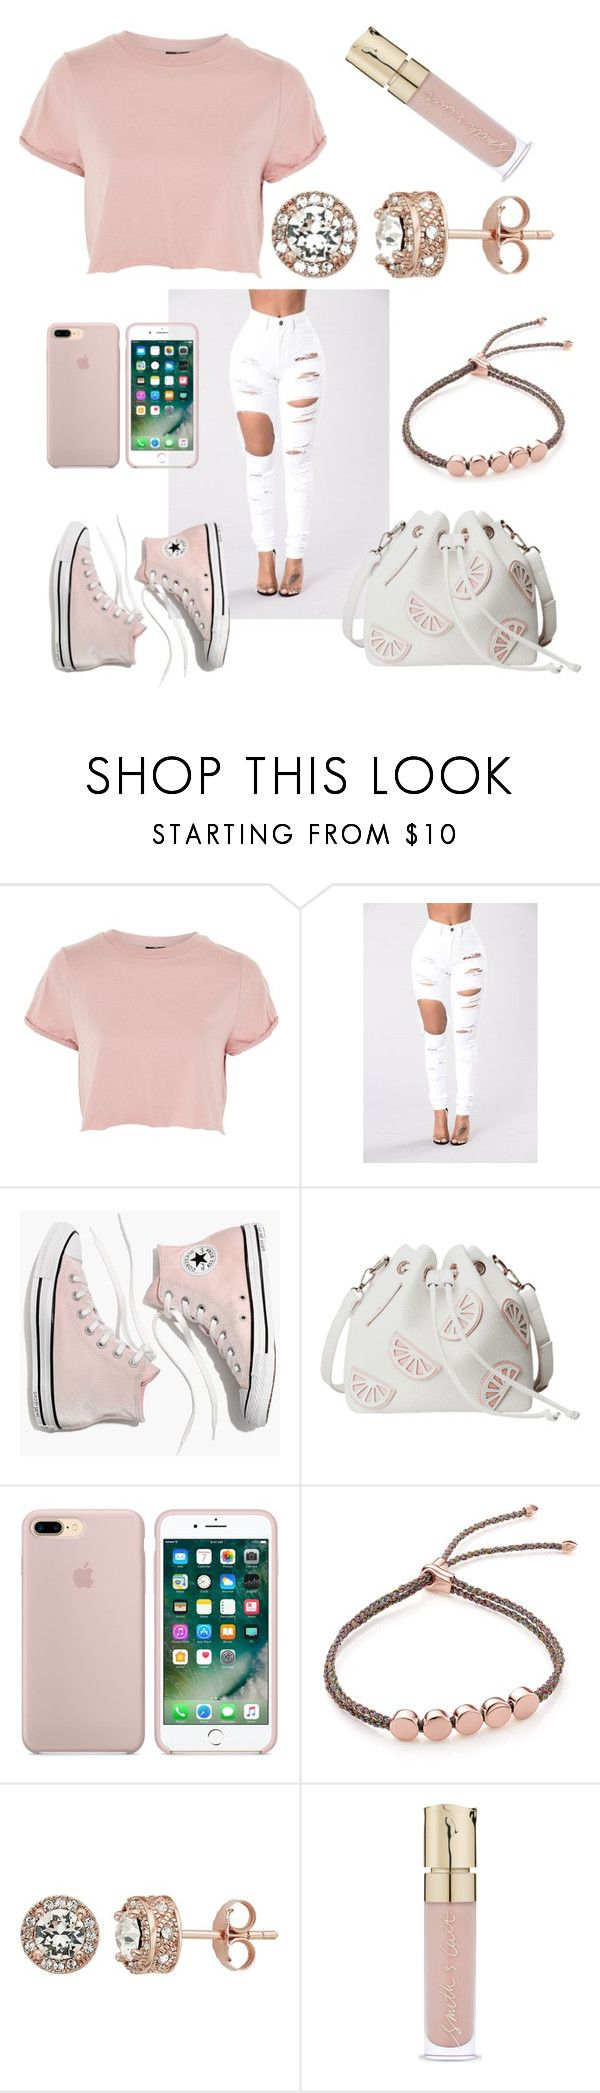 """""""Untitled #17"""" by lindseyhunter-1 ❤ liked on Polyvore featuring Topshop, Madewell, Monica Vinader and Smith & Cult"""